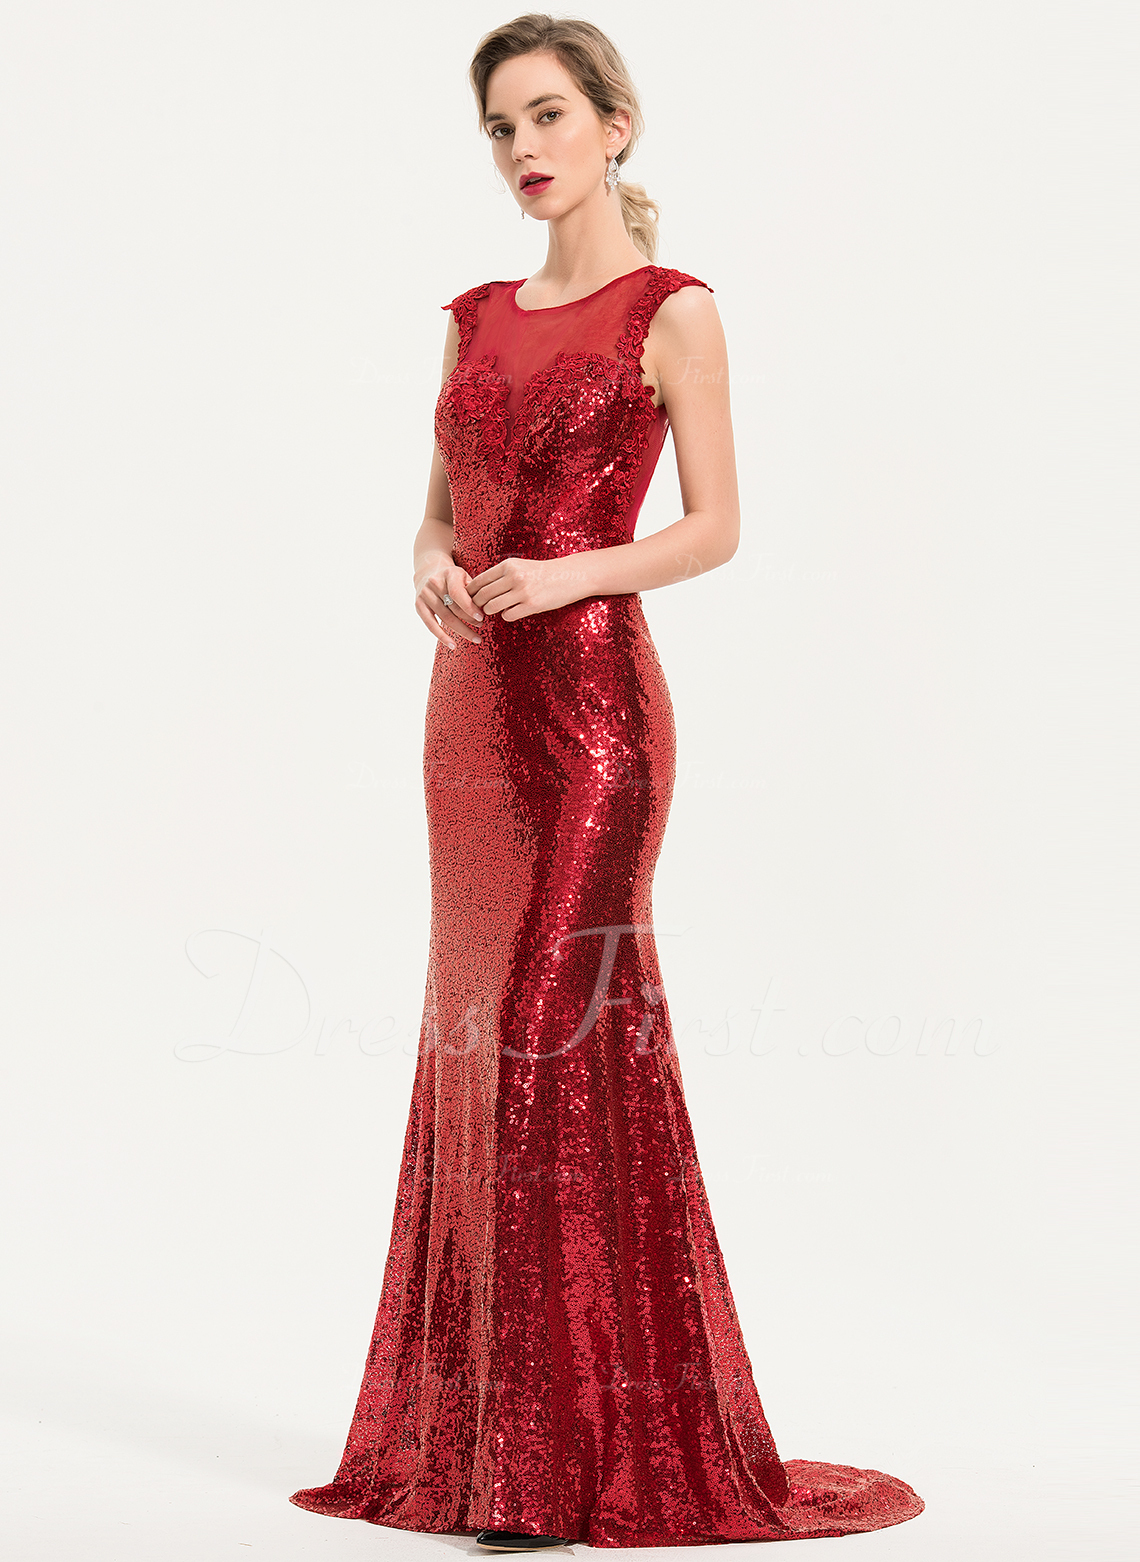 63423c05 Trumpet/Mermaid Scoop Neck Sweep Train Sequined Evening Dress With Lace  #186144. Evening Dresses